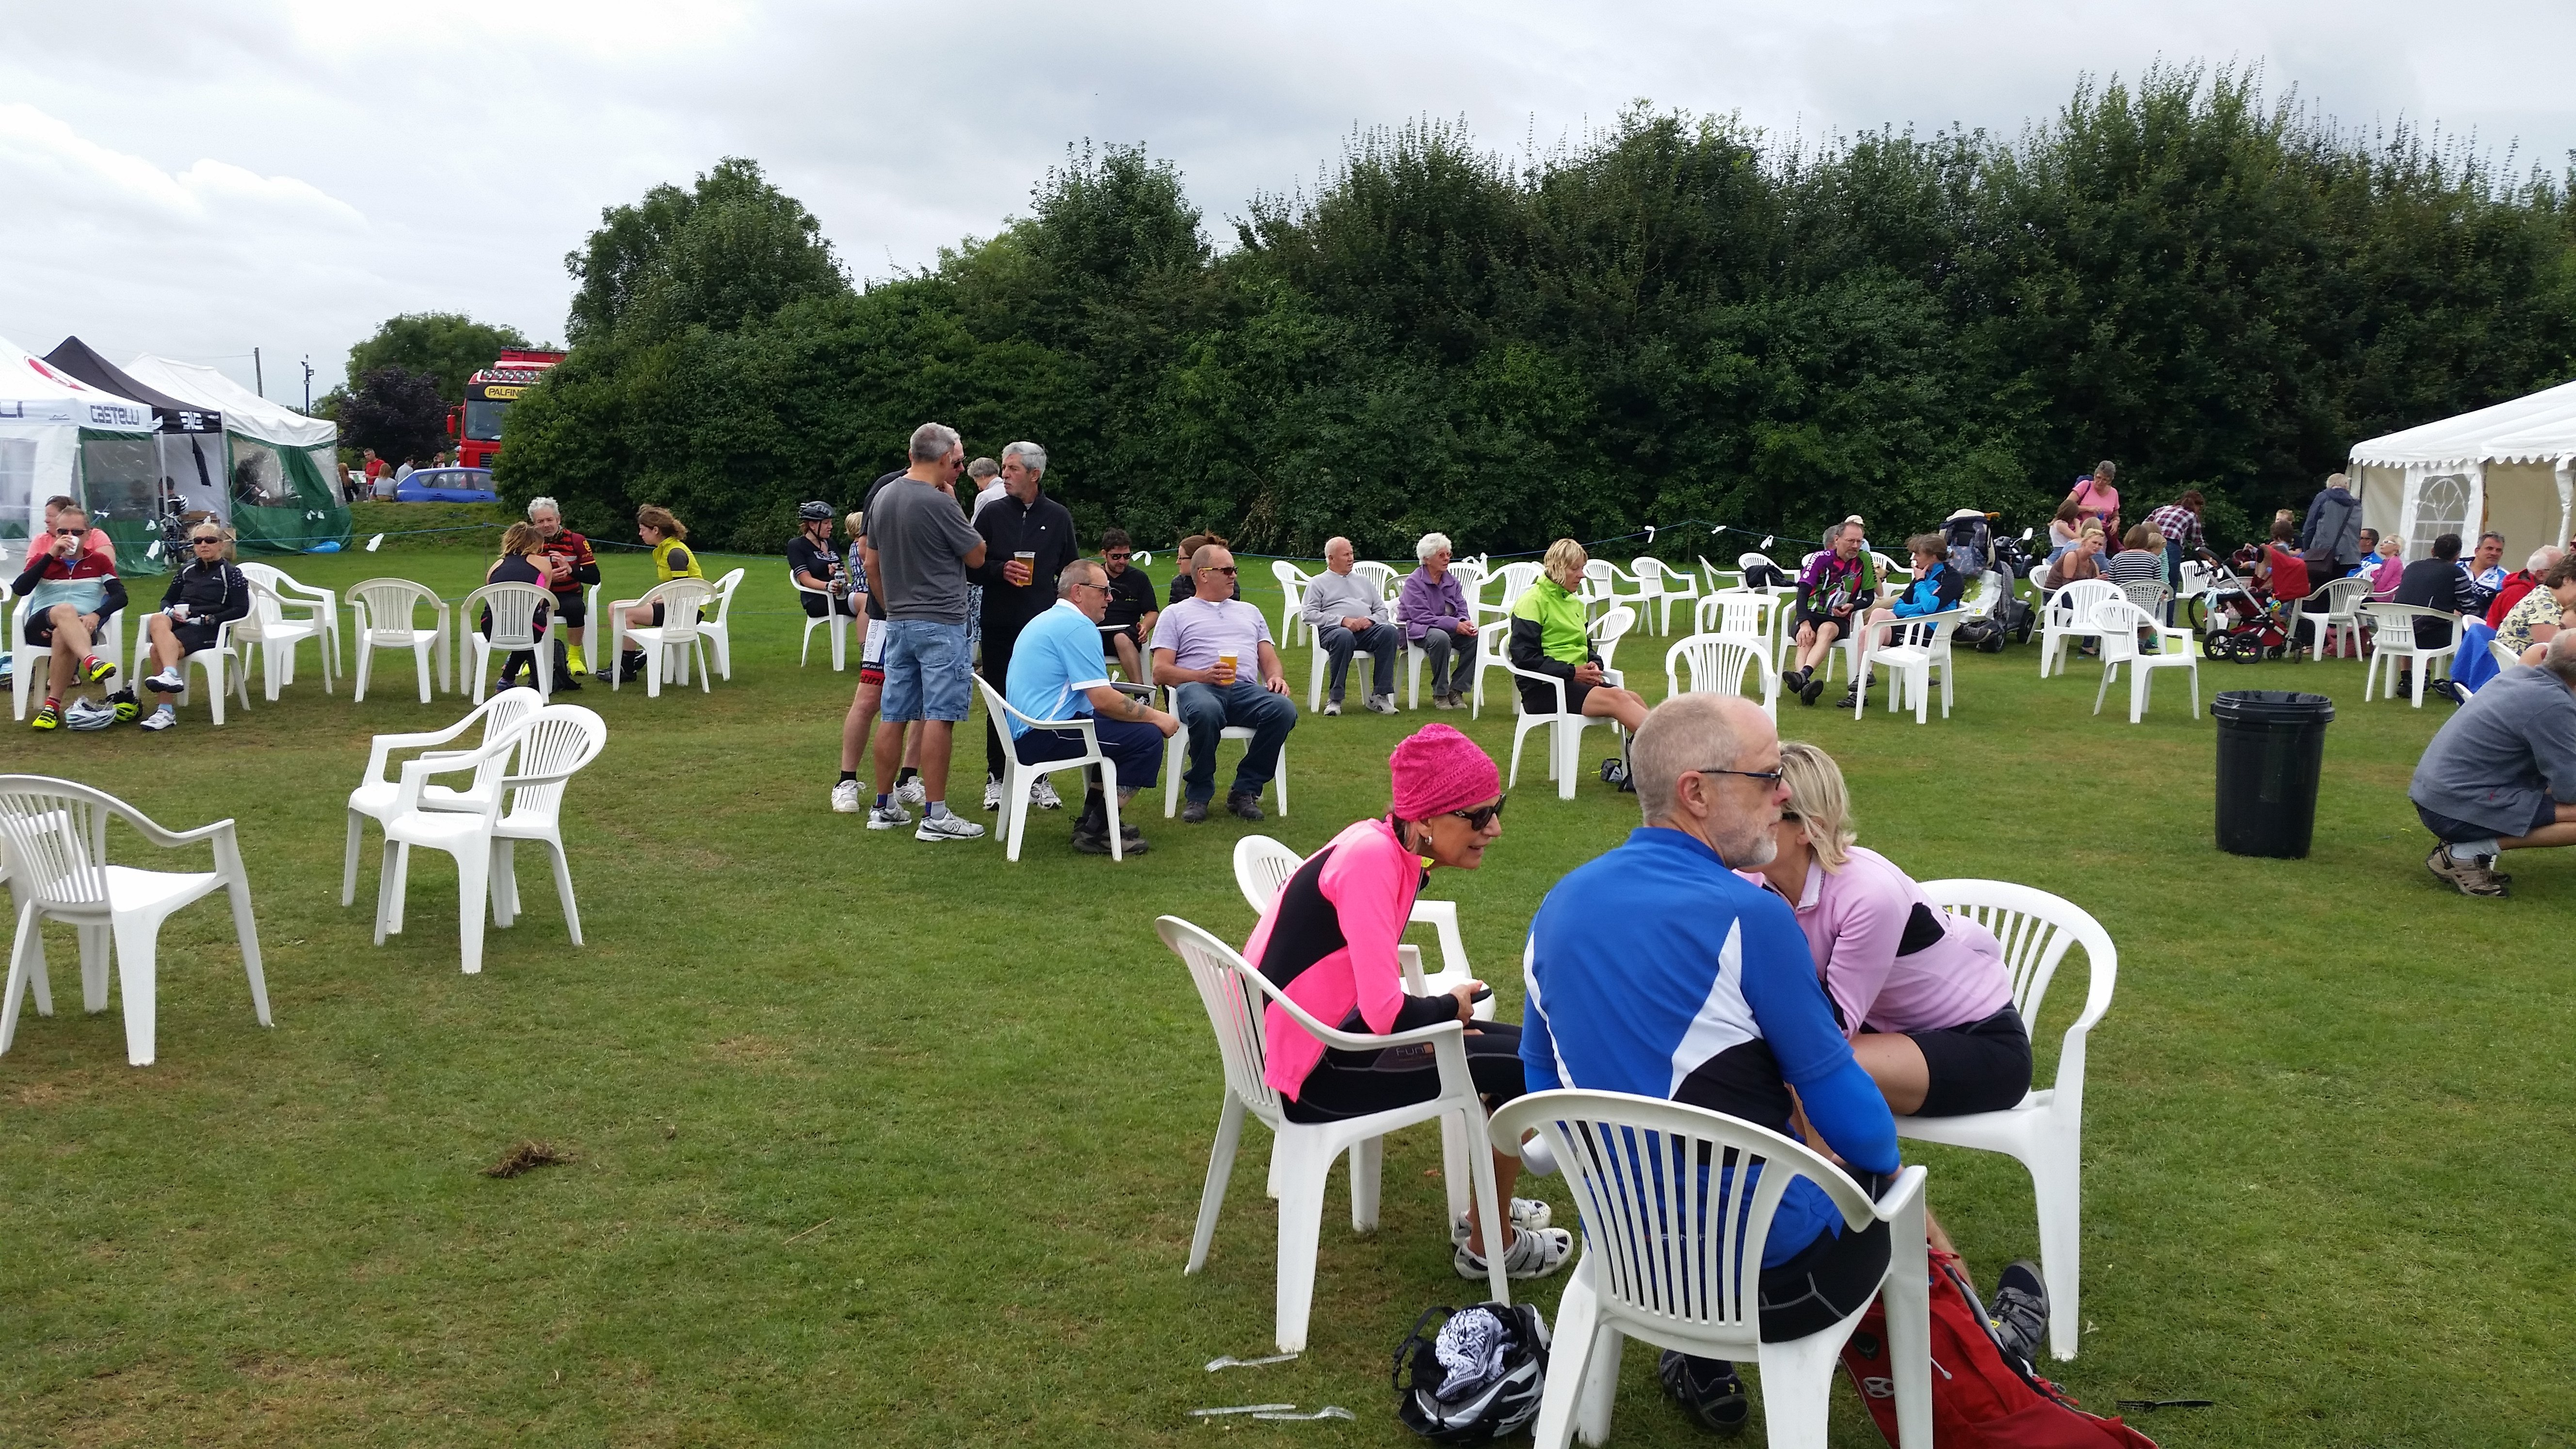 Sodbury sportive end village